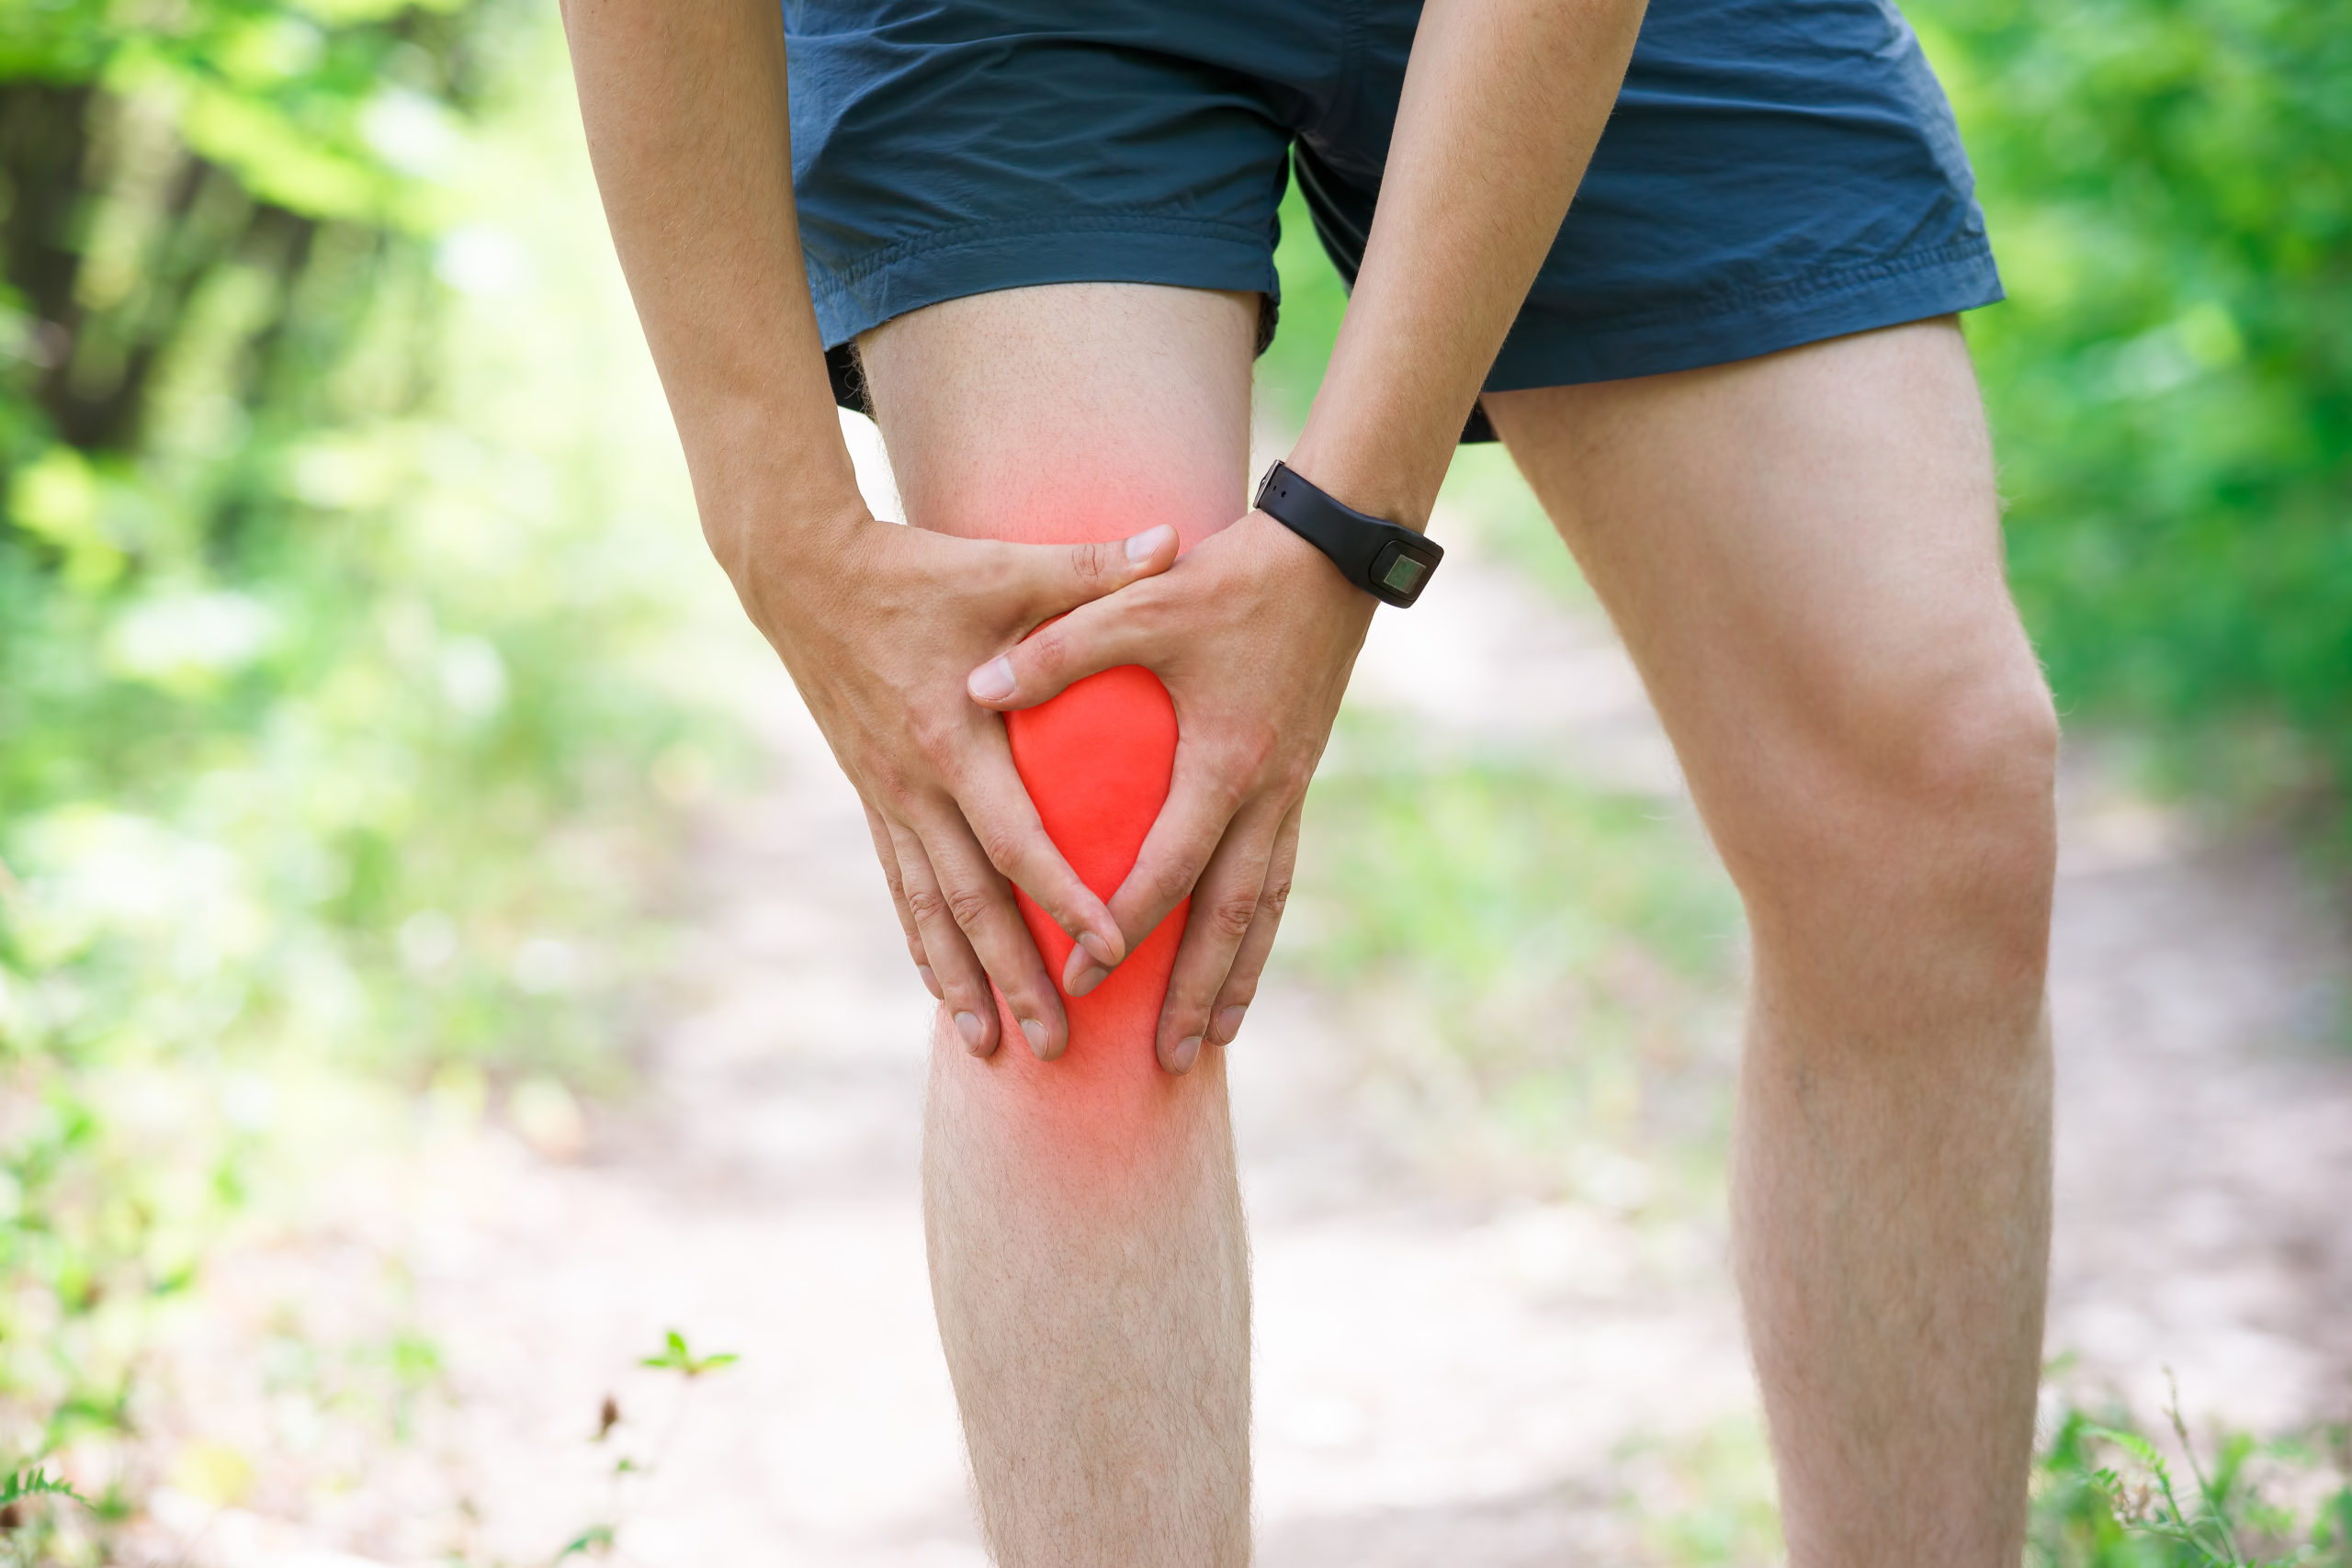 Knee injury and joint pain